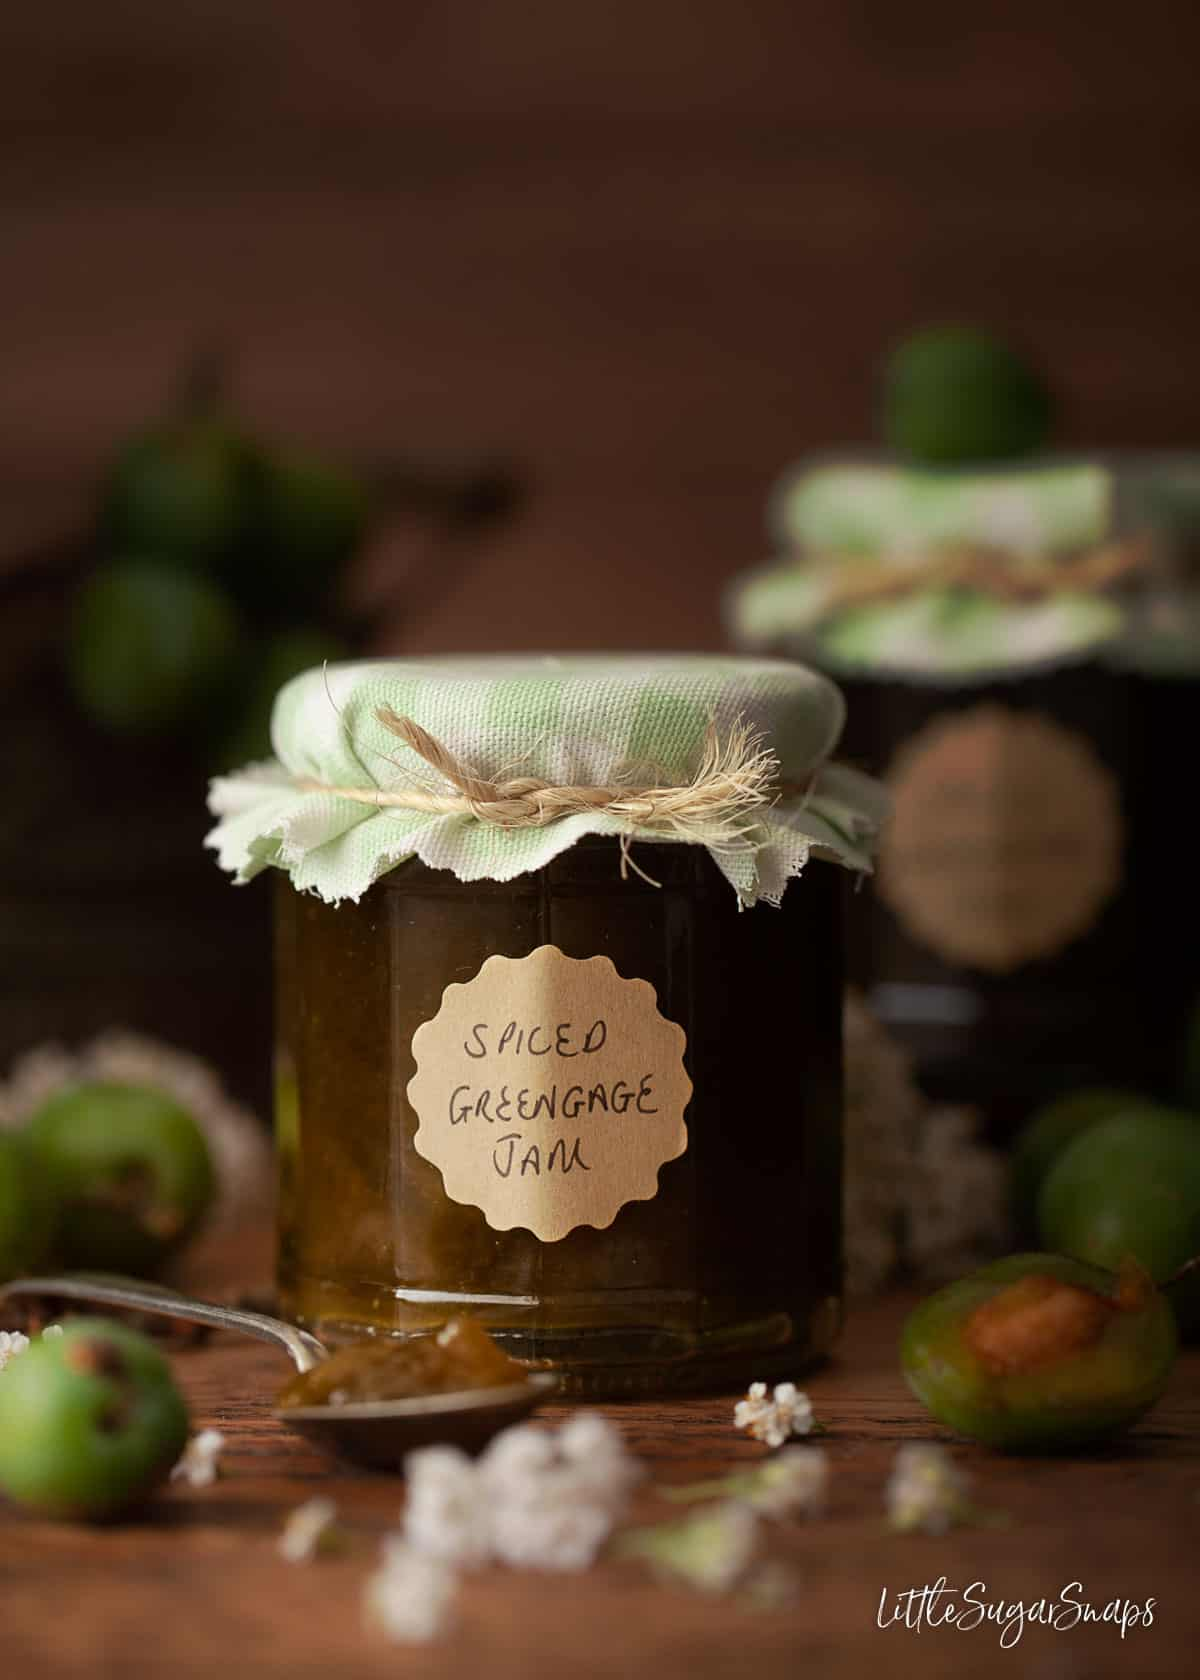 A jar of homemade greengage jam with fresh greengages on the tabletop.